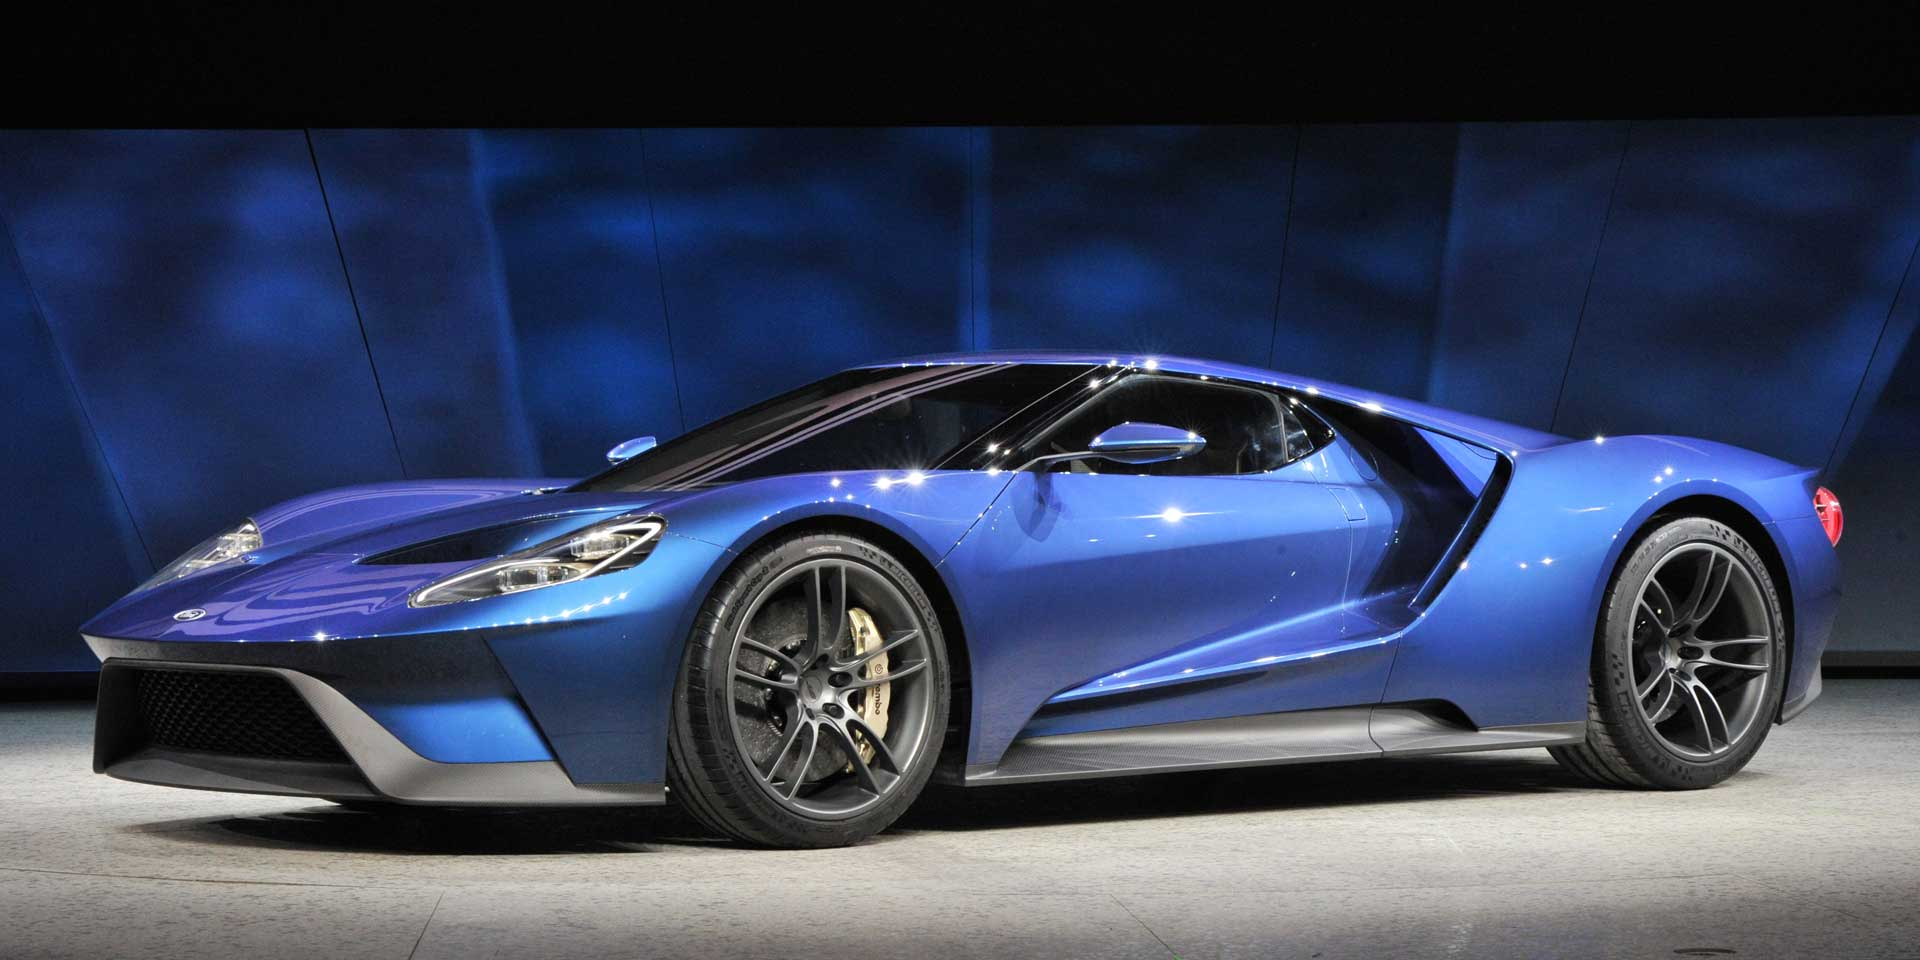 Ford GT Vehicles On Display Chicago Auto Show - Car show tickets 2018